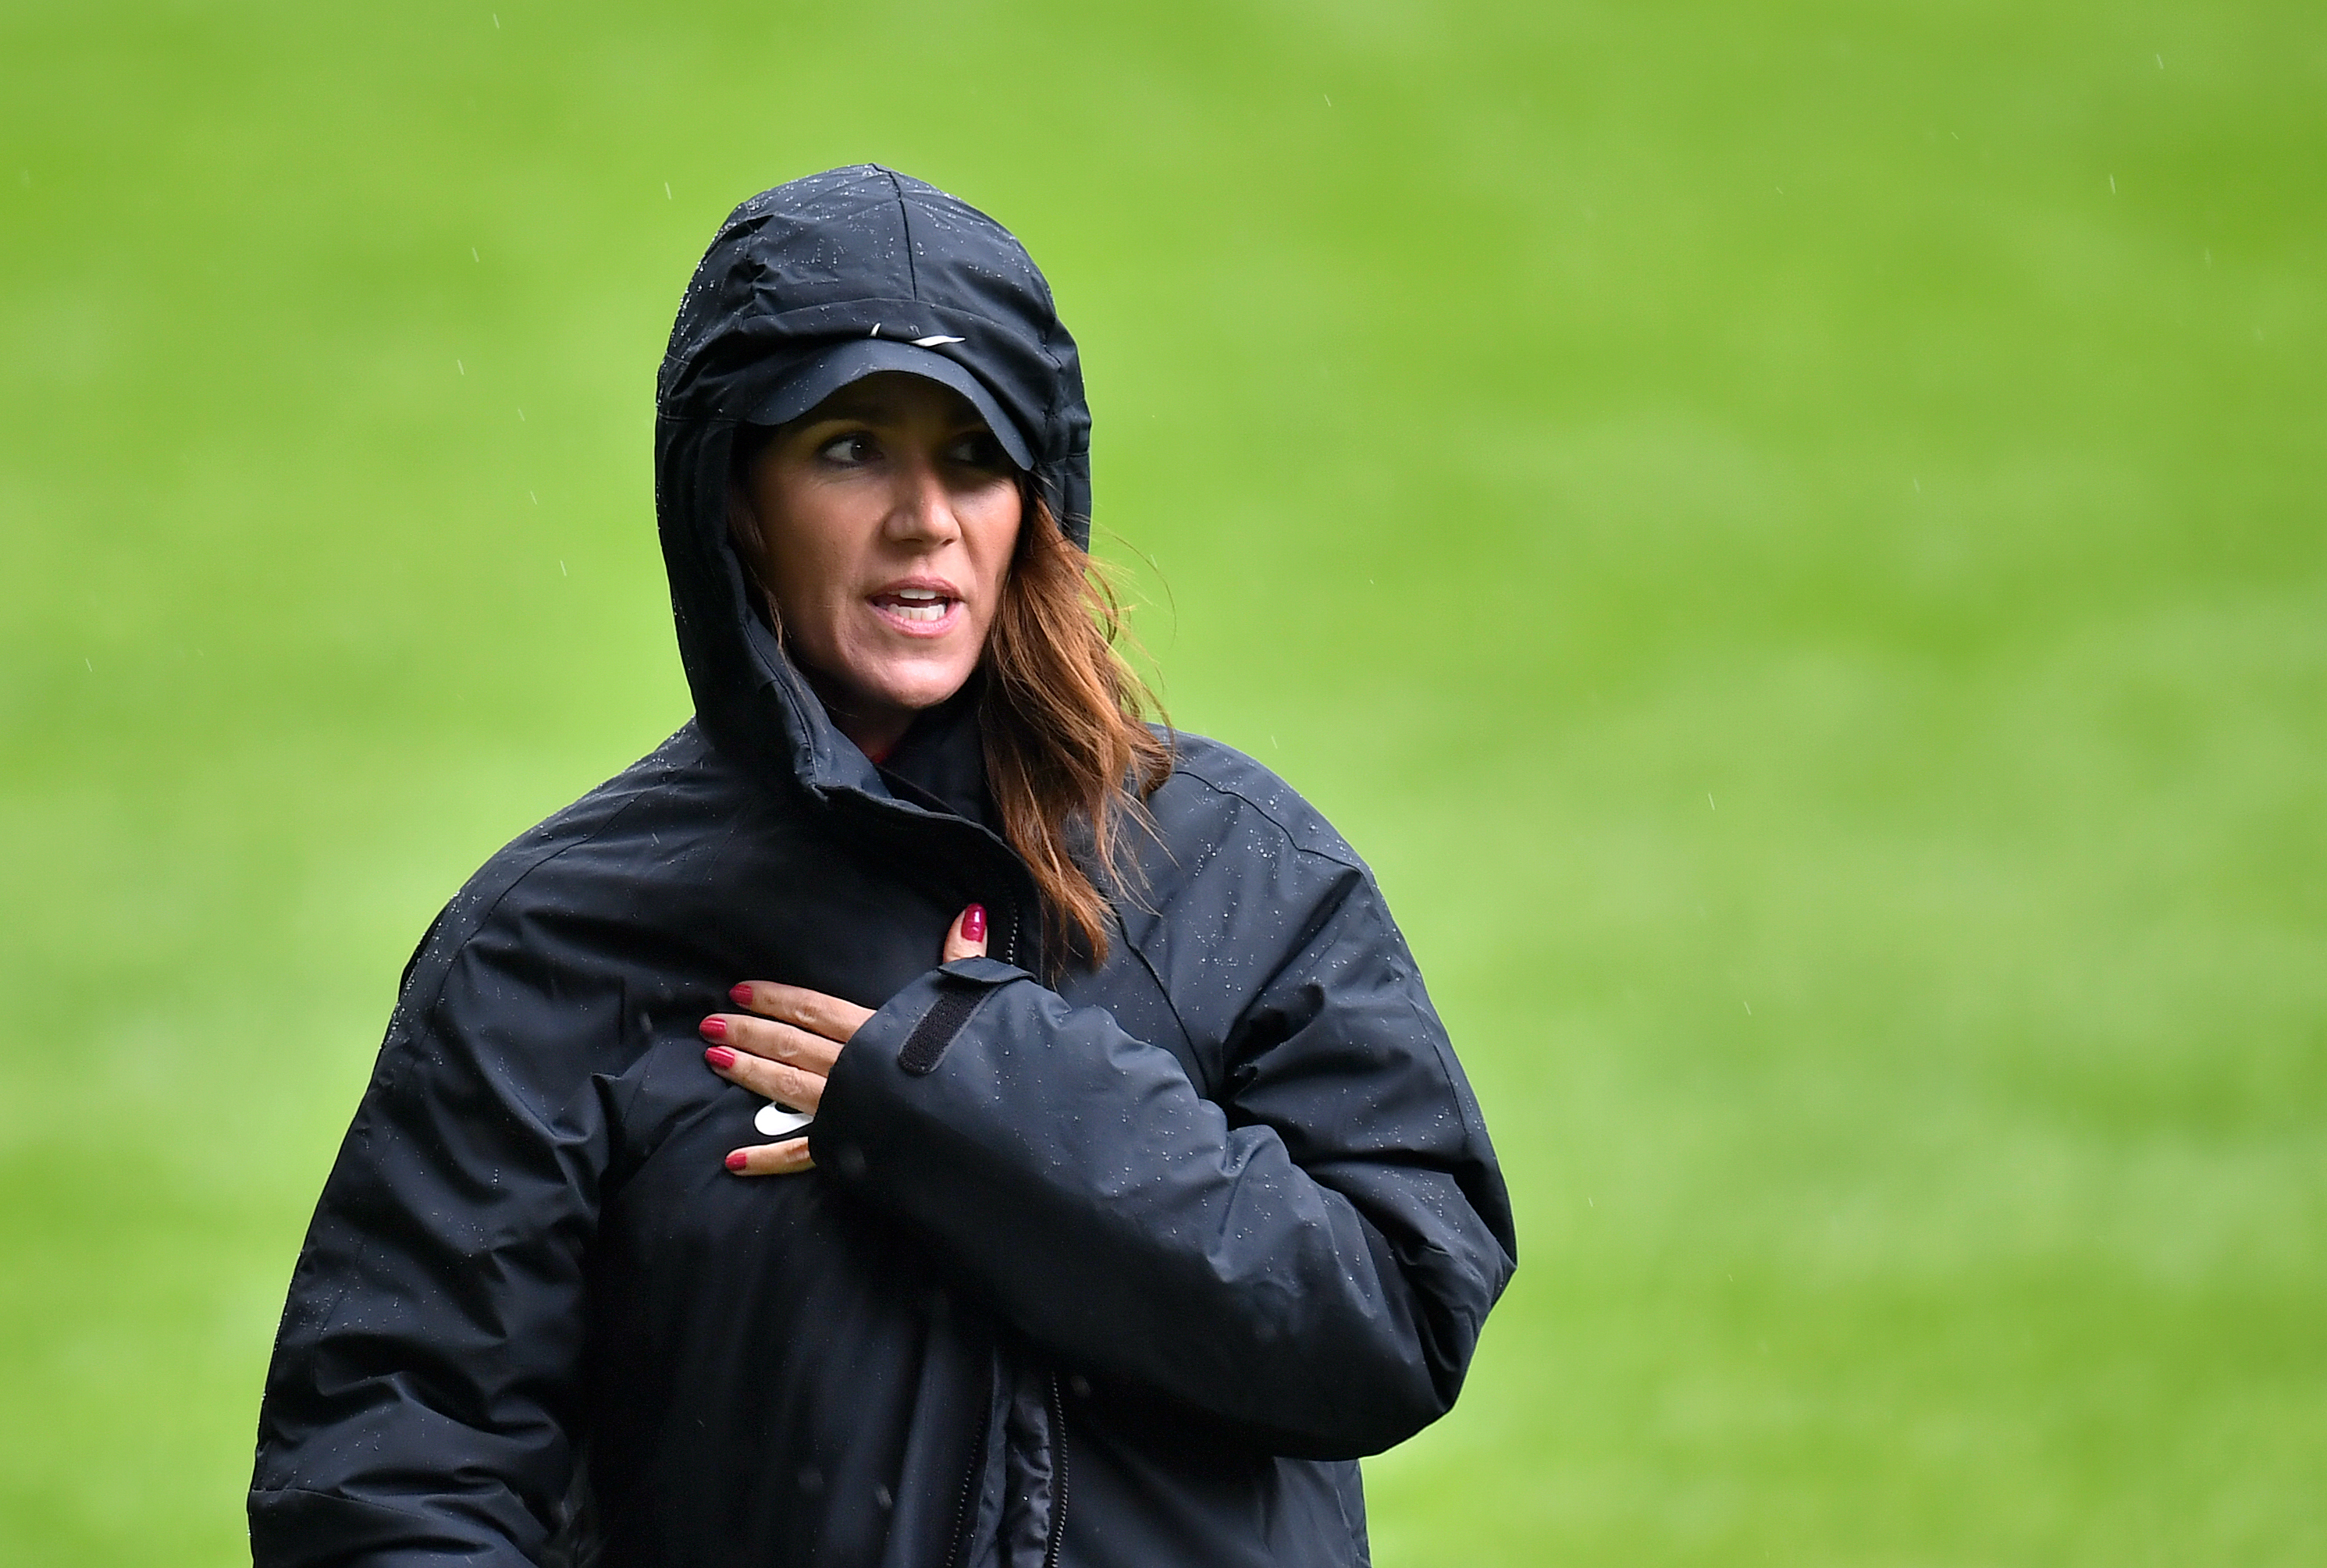 England co-manager Susanna Reid during the media day at Stamford Bridge, London. (Photo by Dominic Lipinski/PA Images via Getty Images)